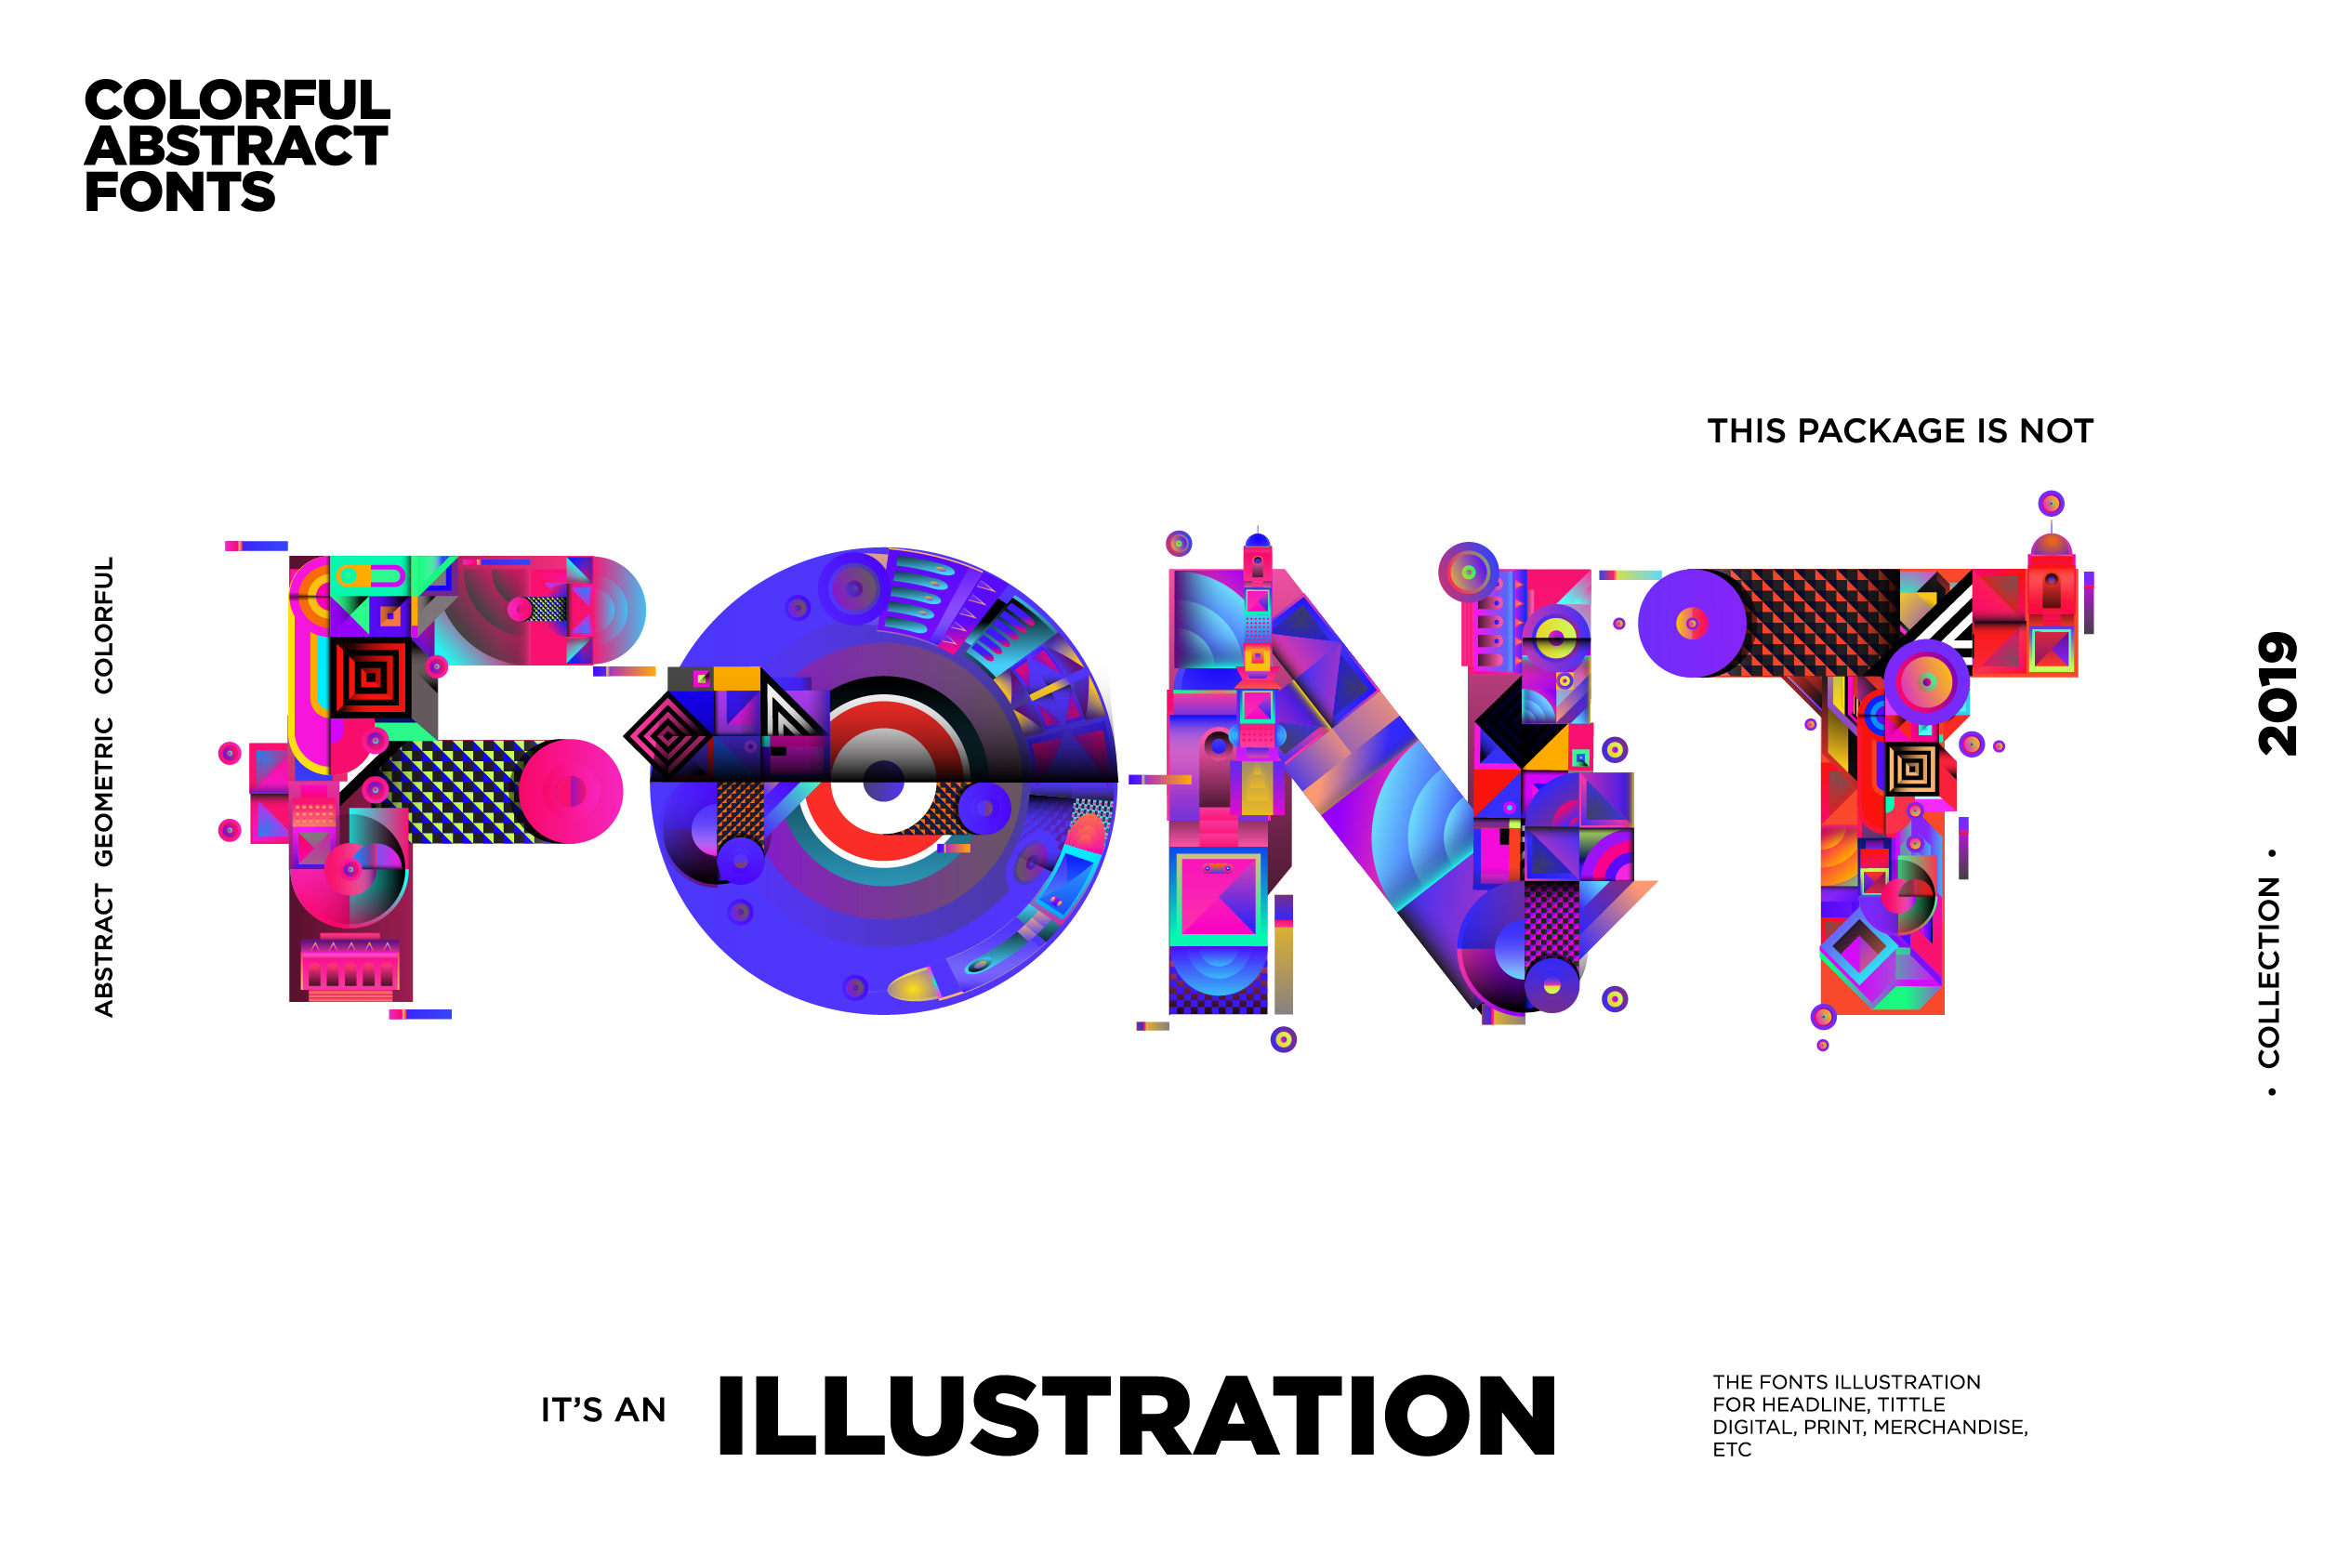 Colorful Alphabets Font Illustration example image 1